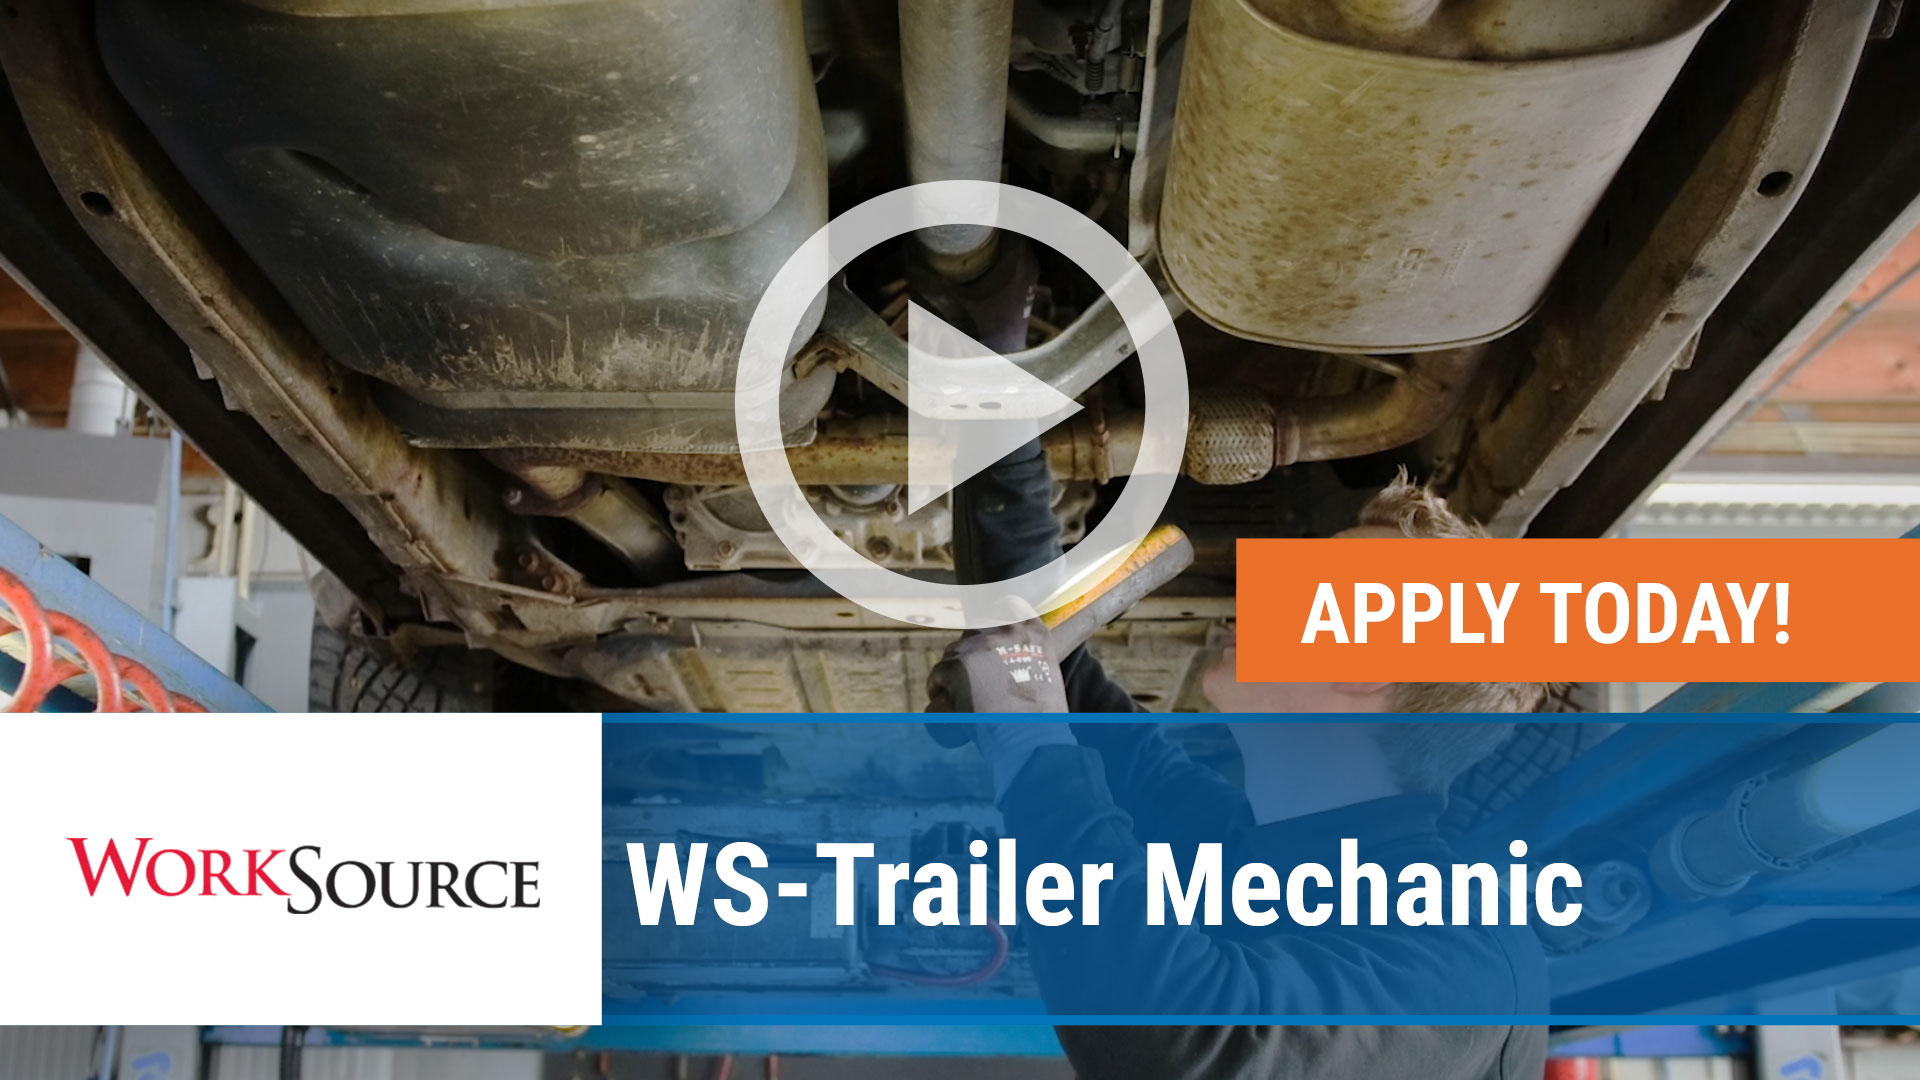 Watch our careers video for available job opening WS Trailer Mechanic in Springdale, Arkansas